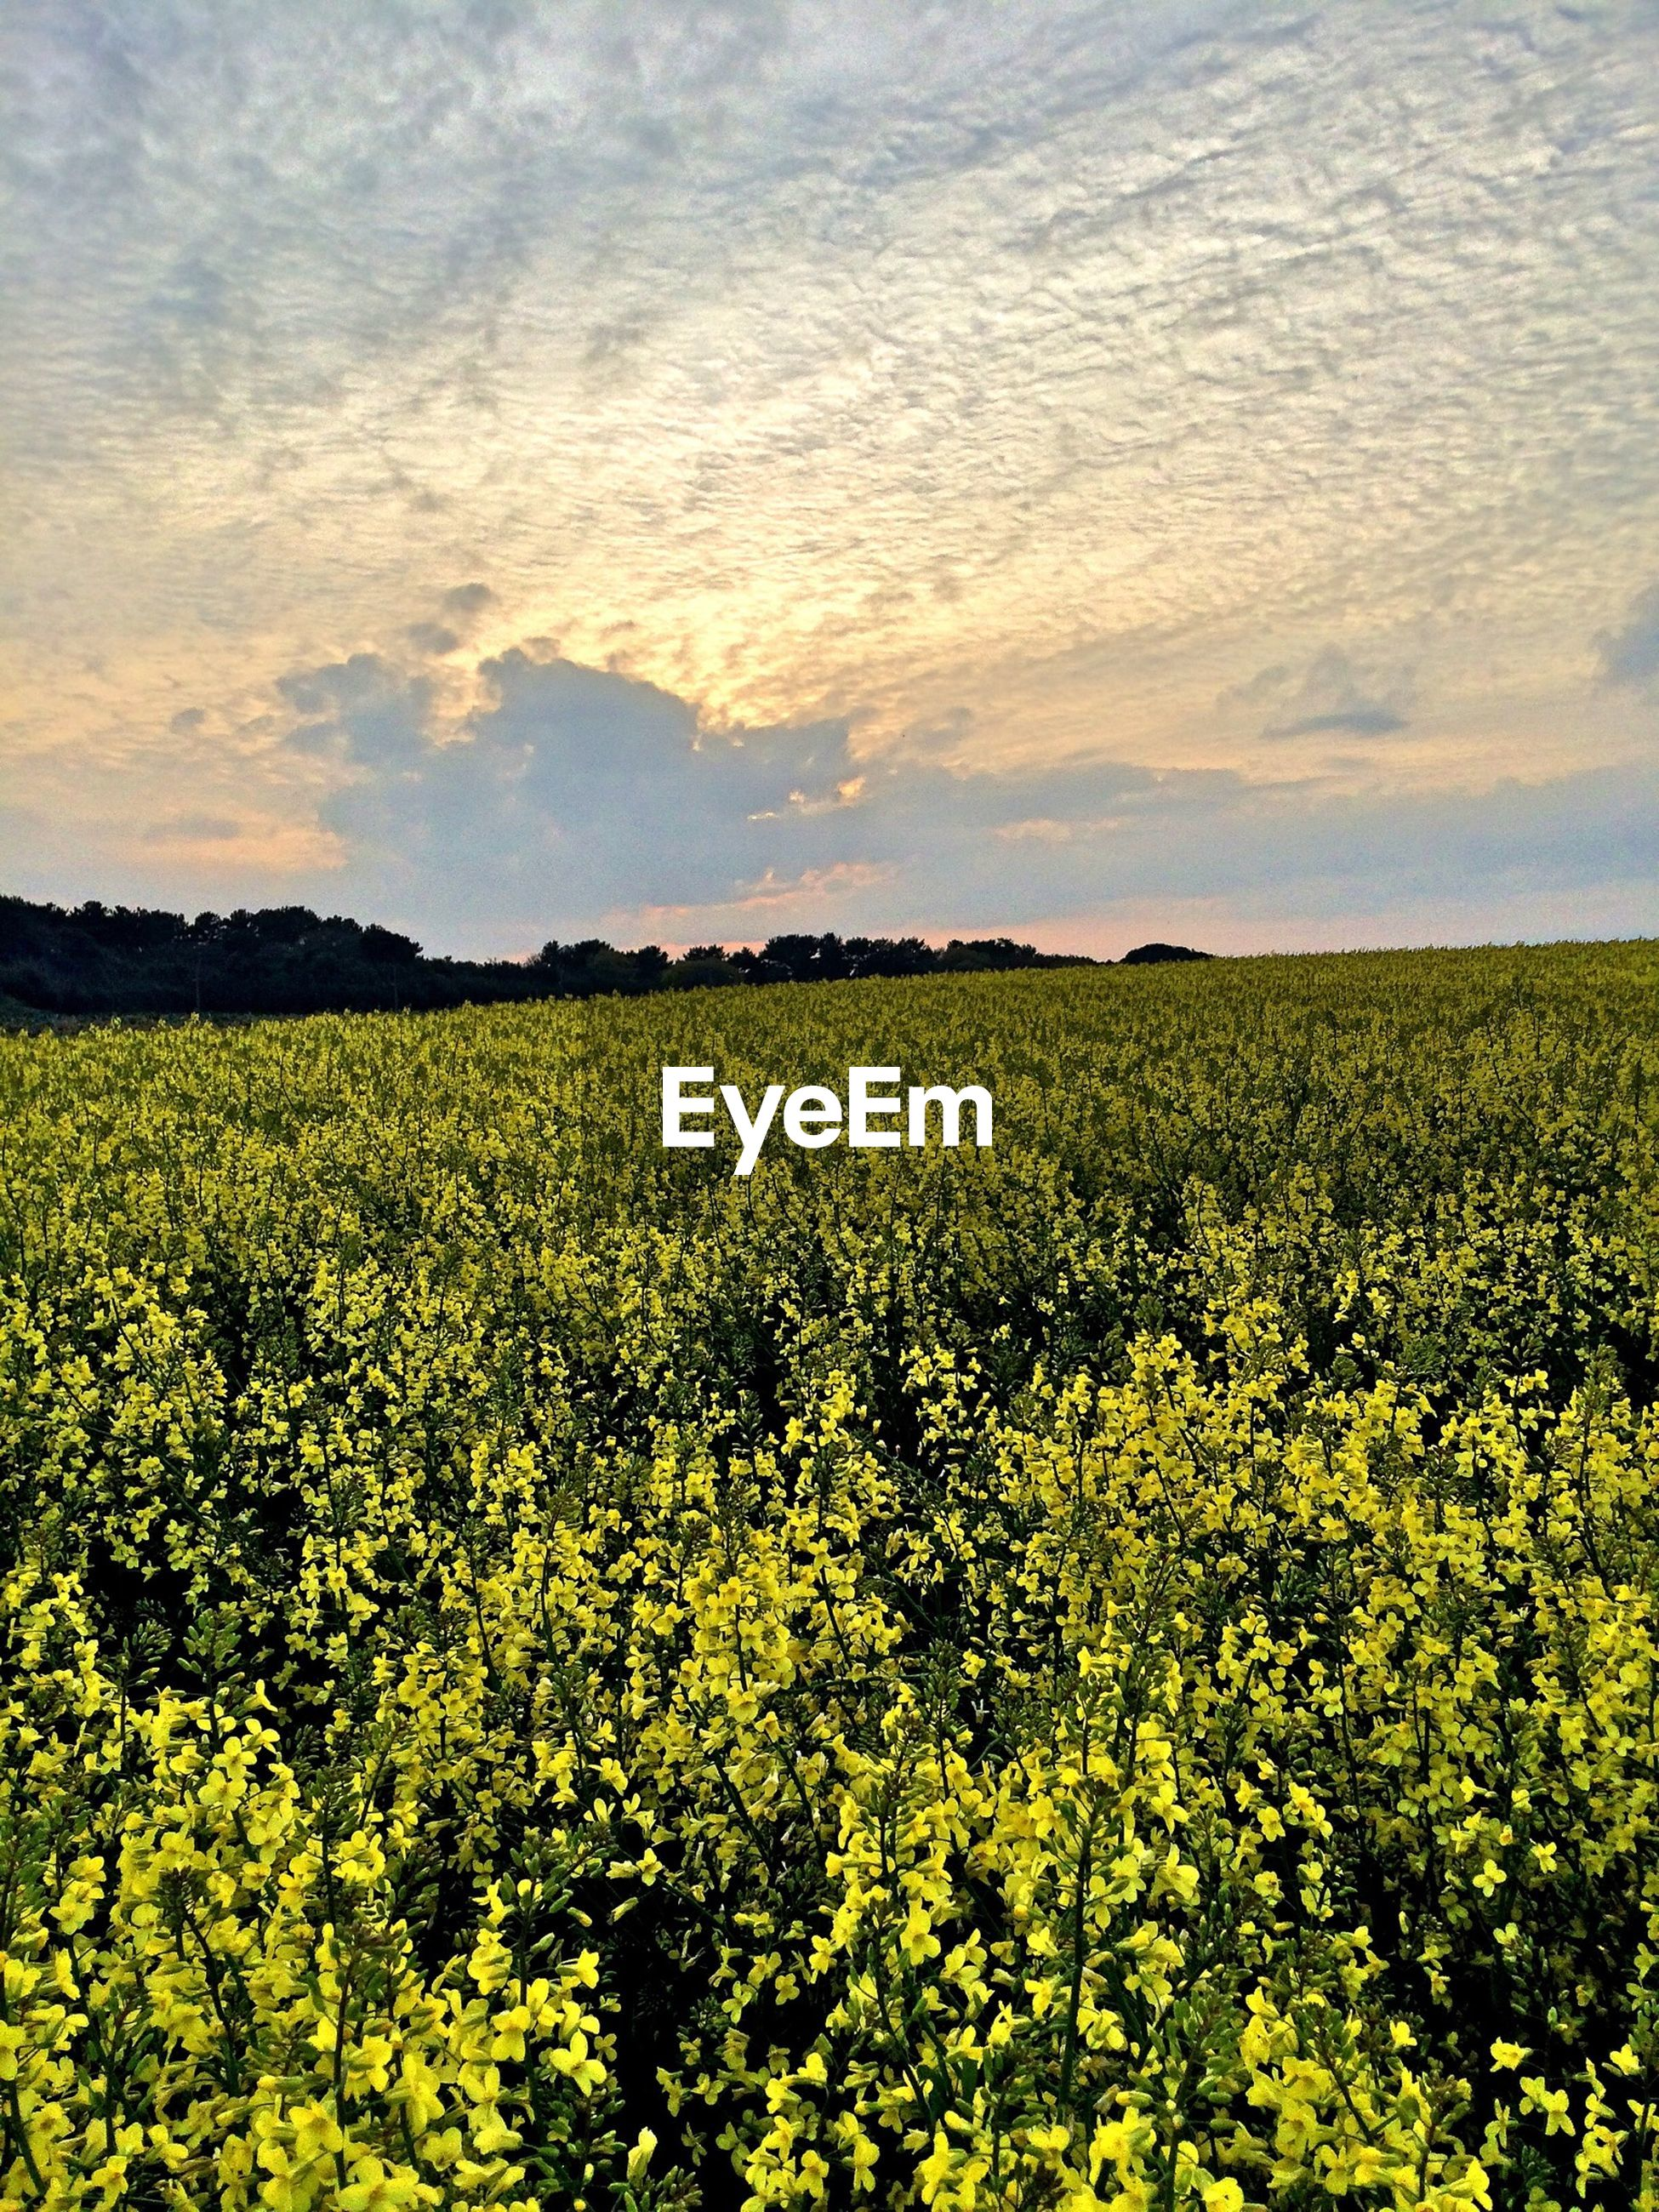 agriculture, field, rural scene, beauty in nature, yellow, landscape, growth, tranquil scene, flower, farm, tranquility, nature, scenics, sky, crop, freshness, cultivated land, oilseed rape, cloud - sky, plant